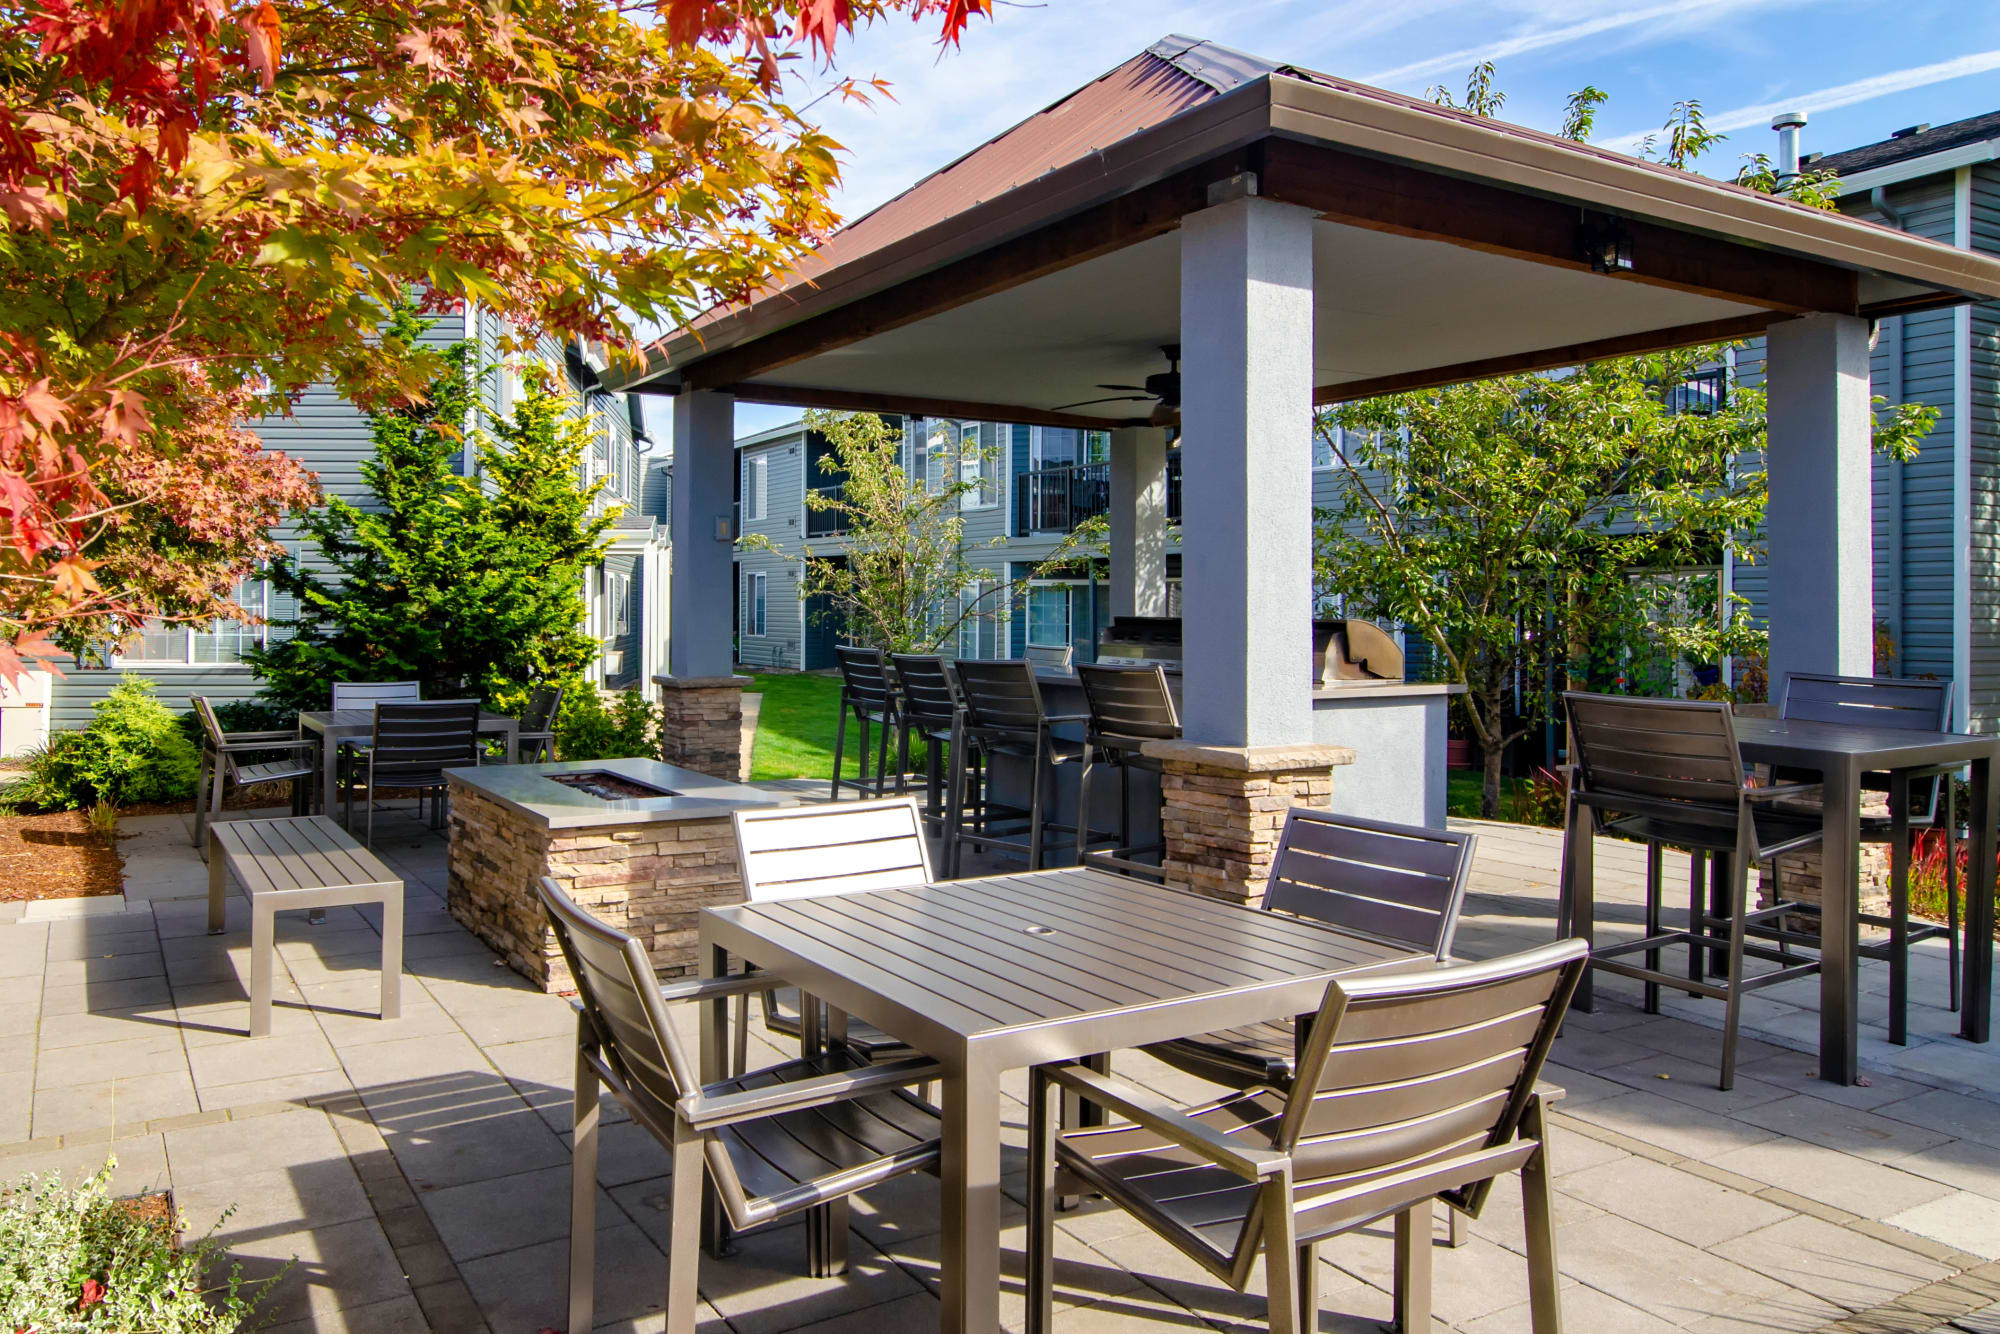 Fire pit and barbecue area at The Addison Apartments in Vancouver, Washington